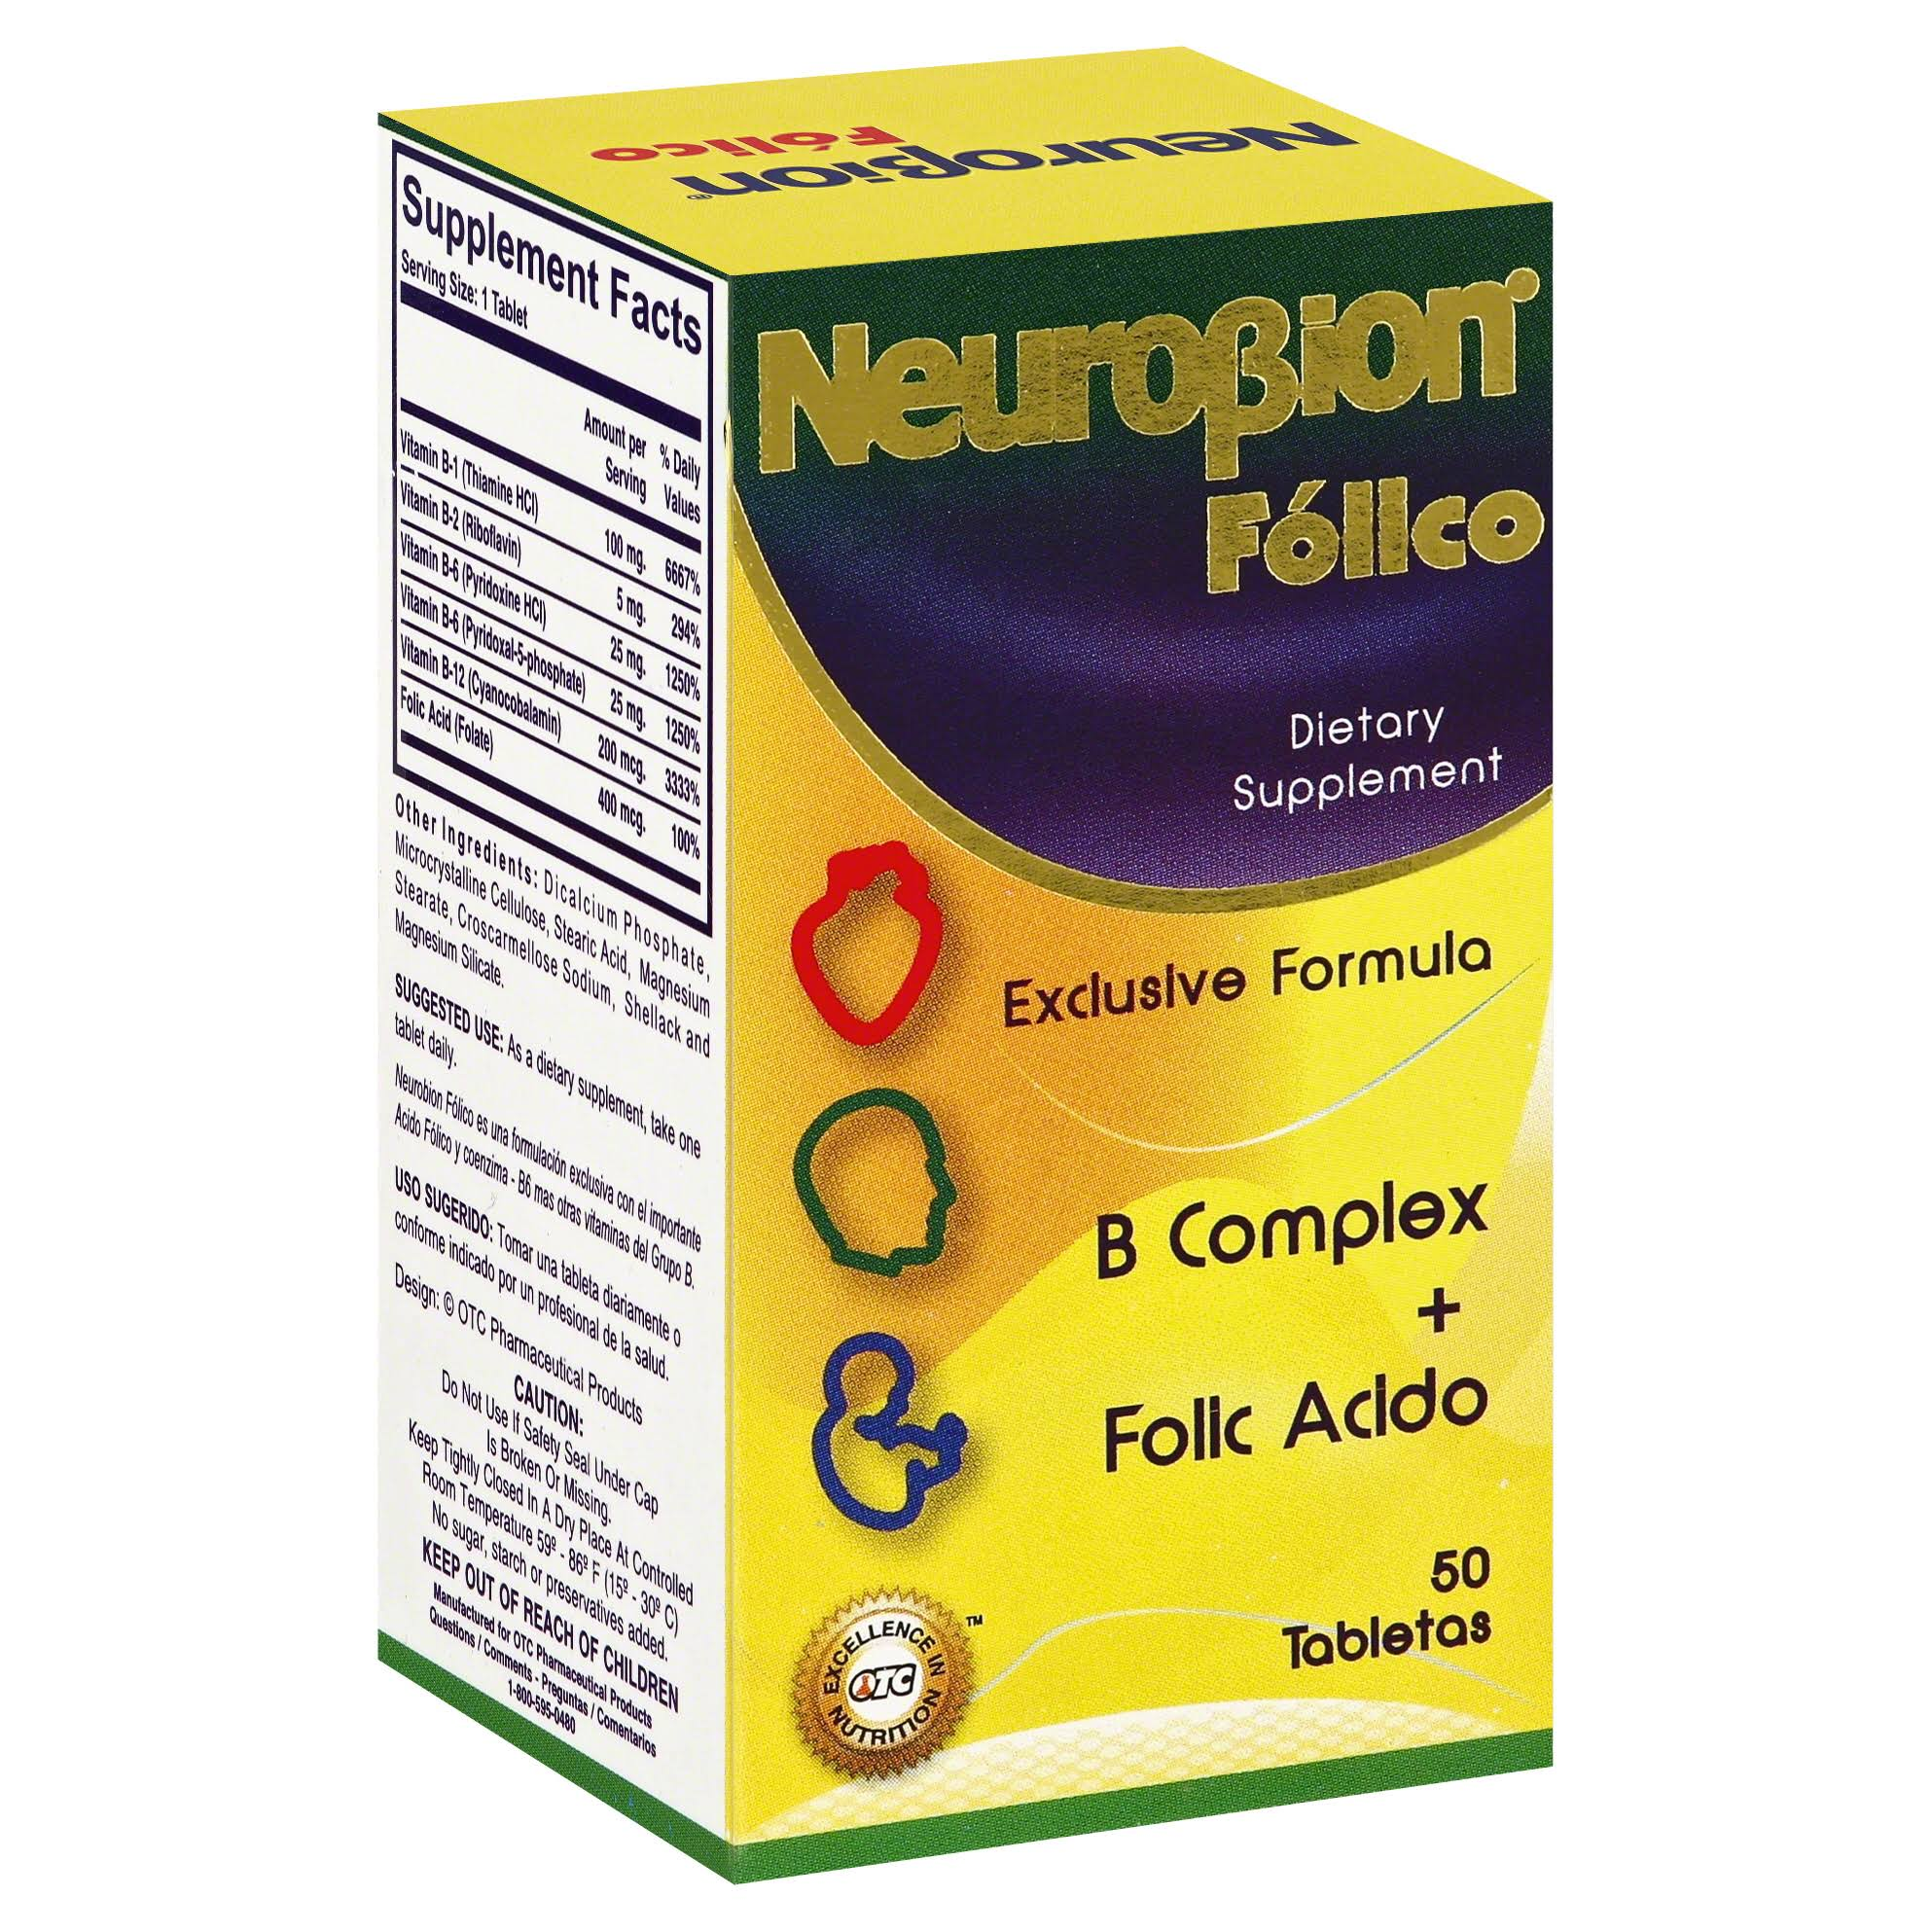 NeuroBion Folico Tablets